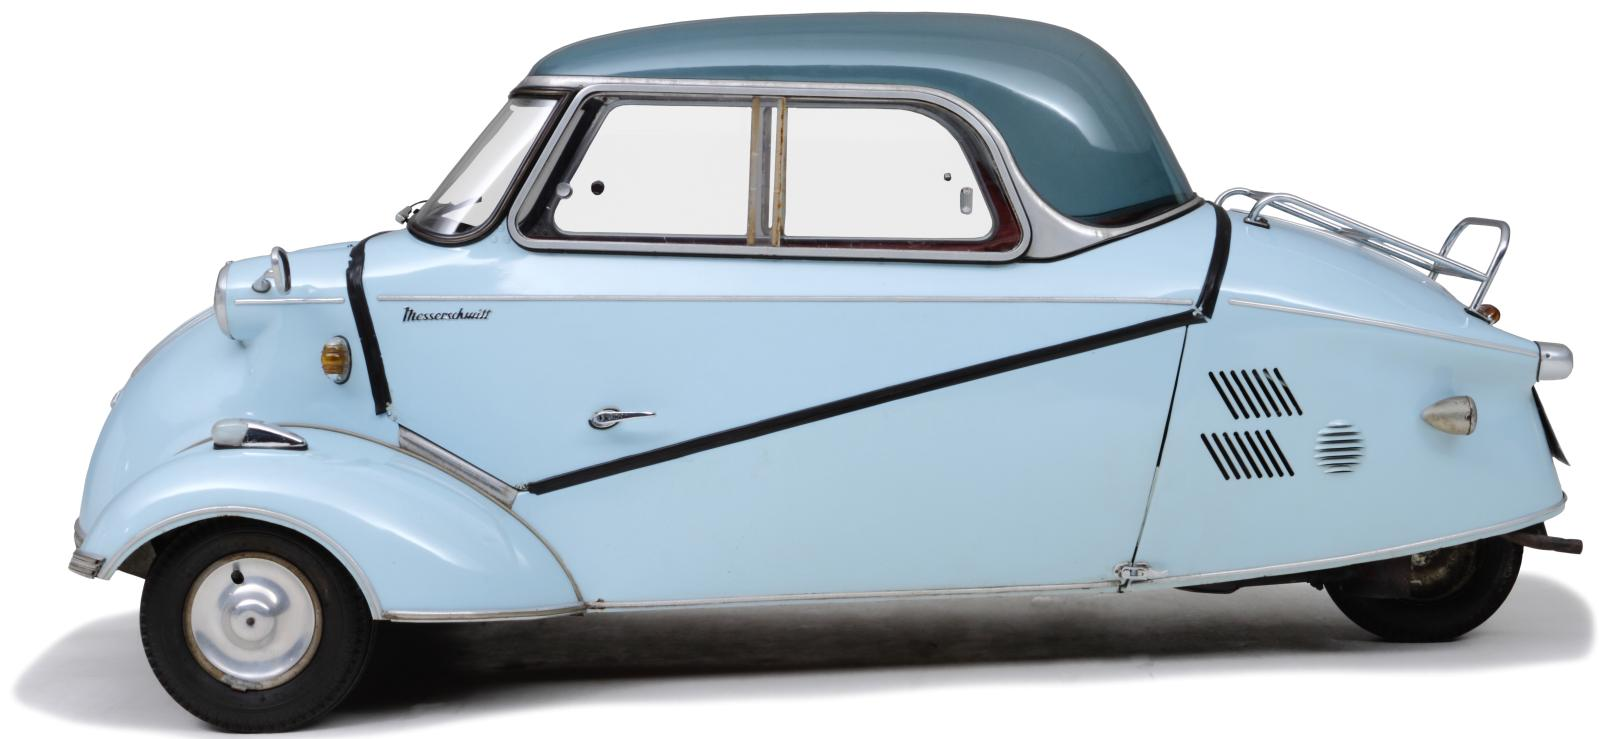 Messerschmitt KR 200, Kabinenroller (cabin scooter), 1959.© Louwman Museum - The Hague